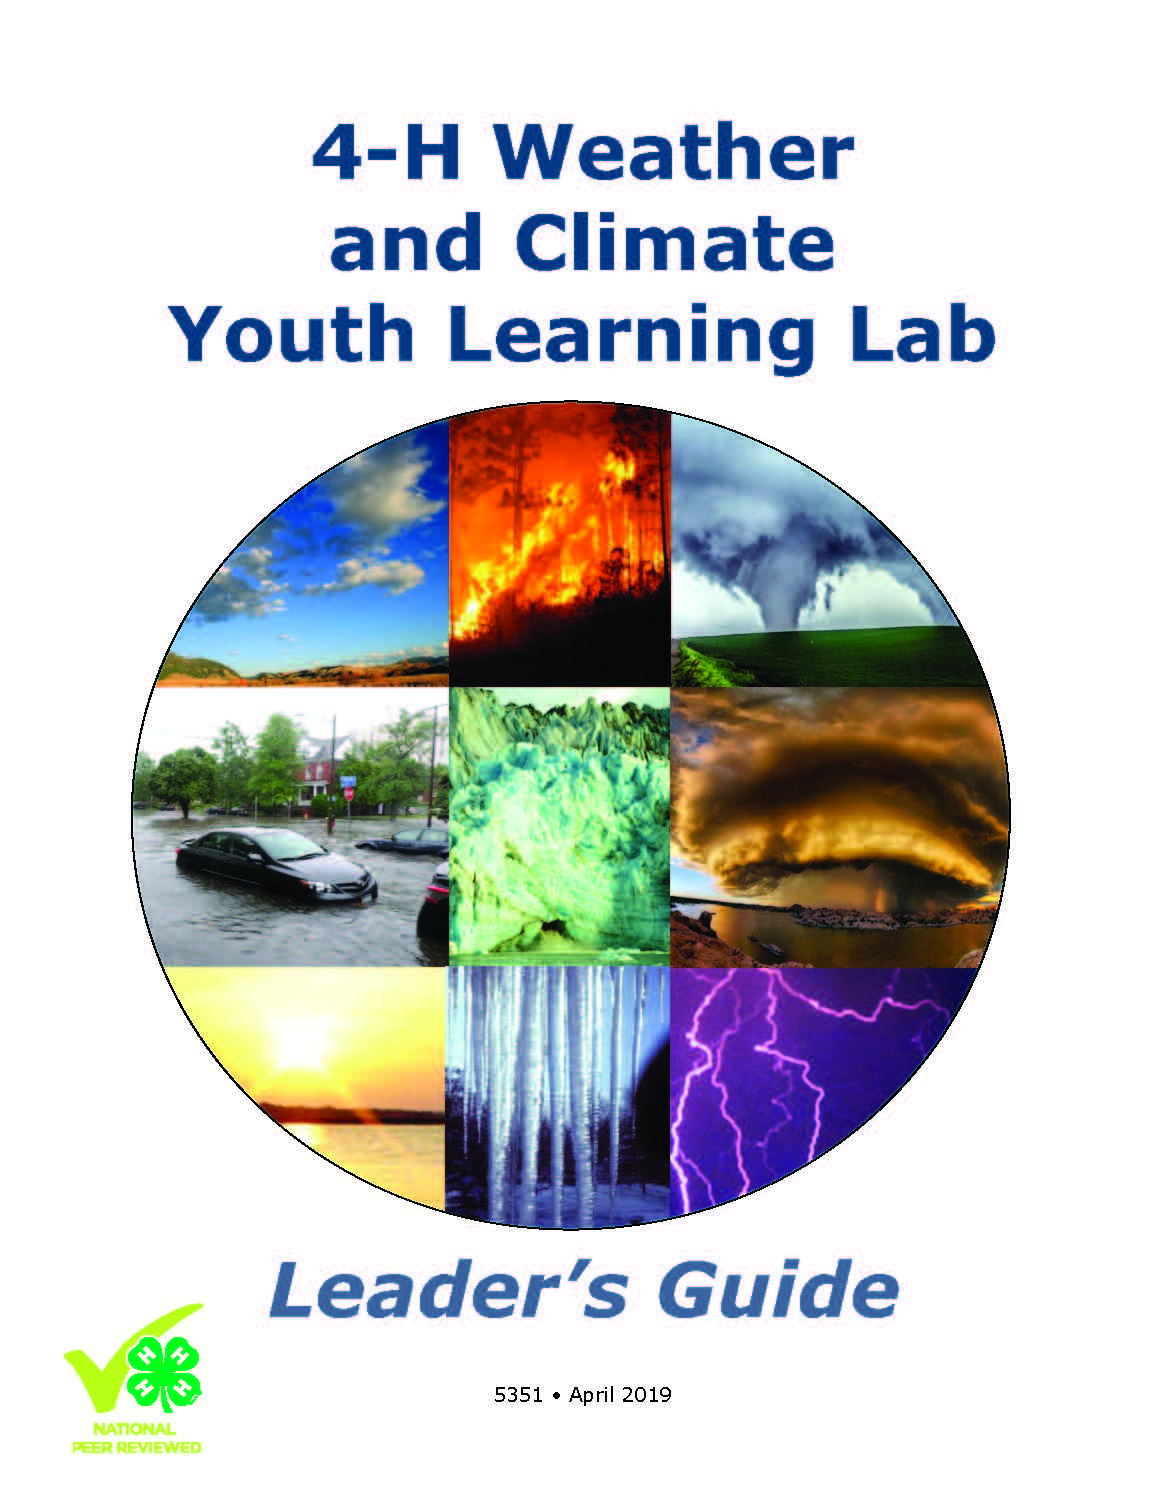 Youth Climate Curriculum